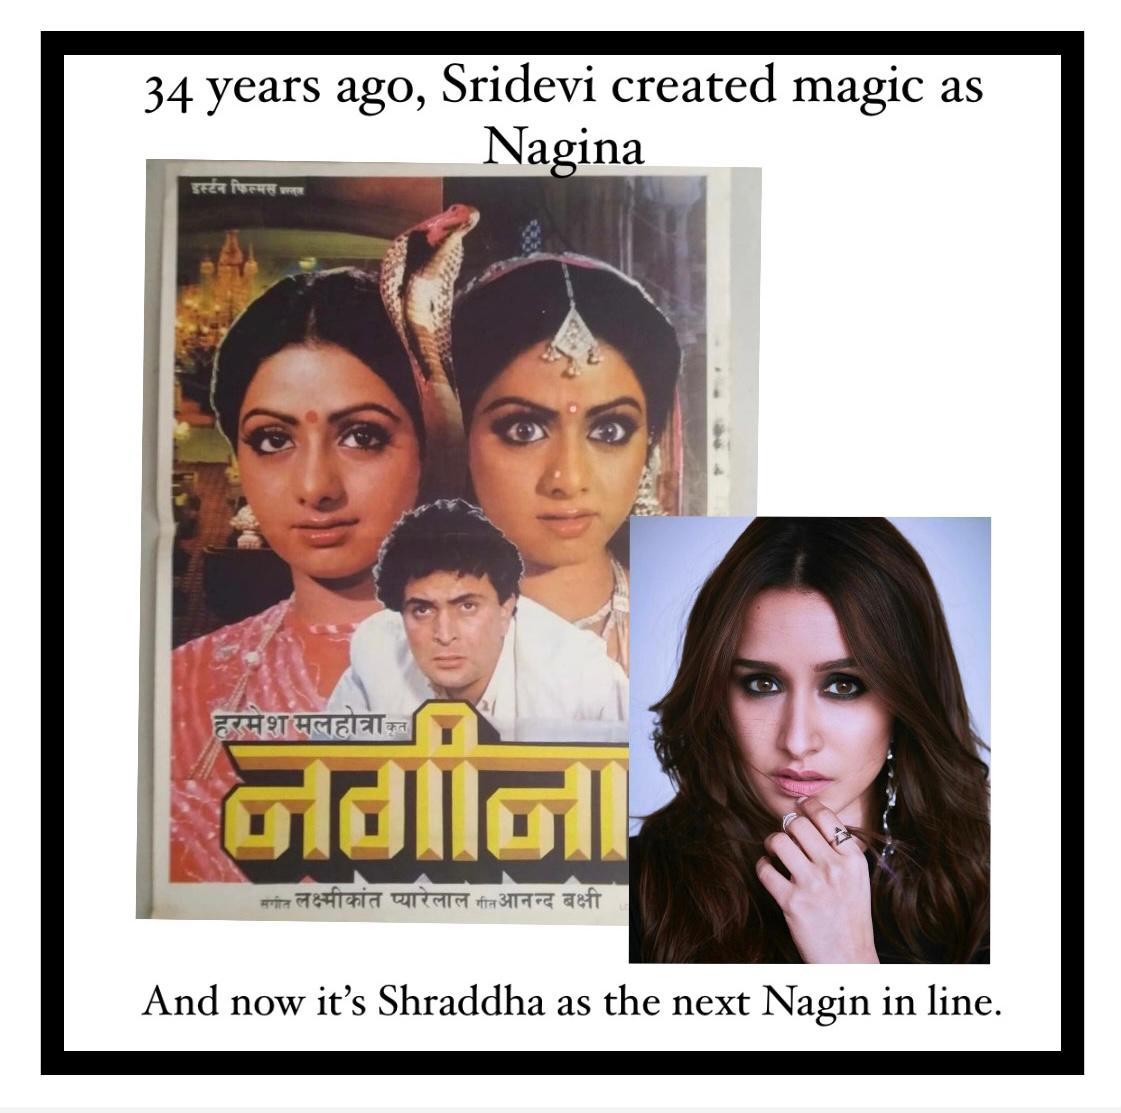 Sridevi's Nagina released on November 28, 1986 and she's been the most iconic #Nagin ever since. Can't wait🤩 for @Shraddhakapoor to recreate the magic as the 'millennial' Nagin  All the best to the team!😍🥳 @FuriaVishal @Nikhil_Dwivedi @saffrom_bm